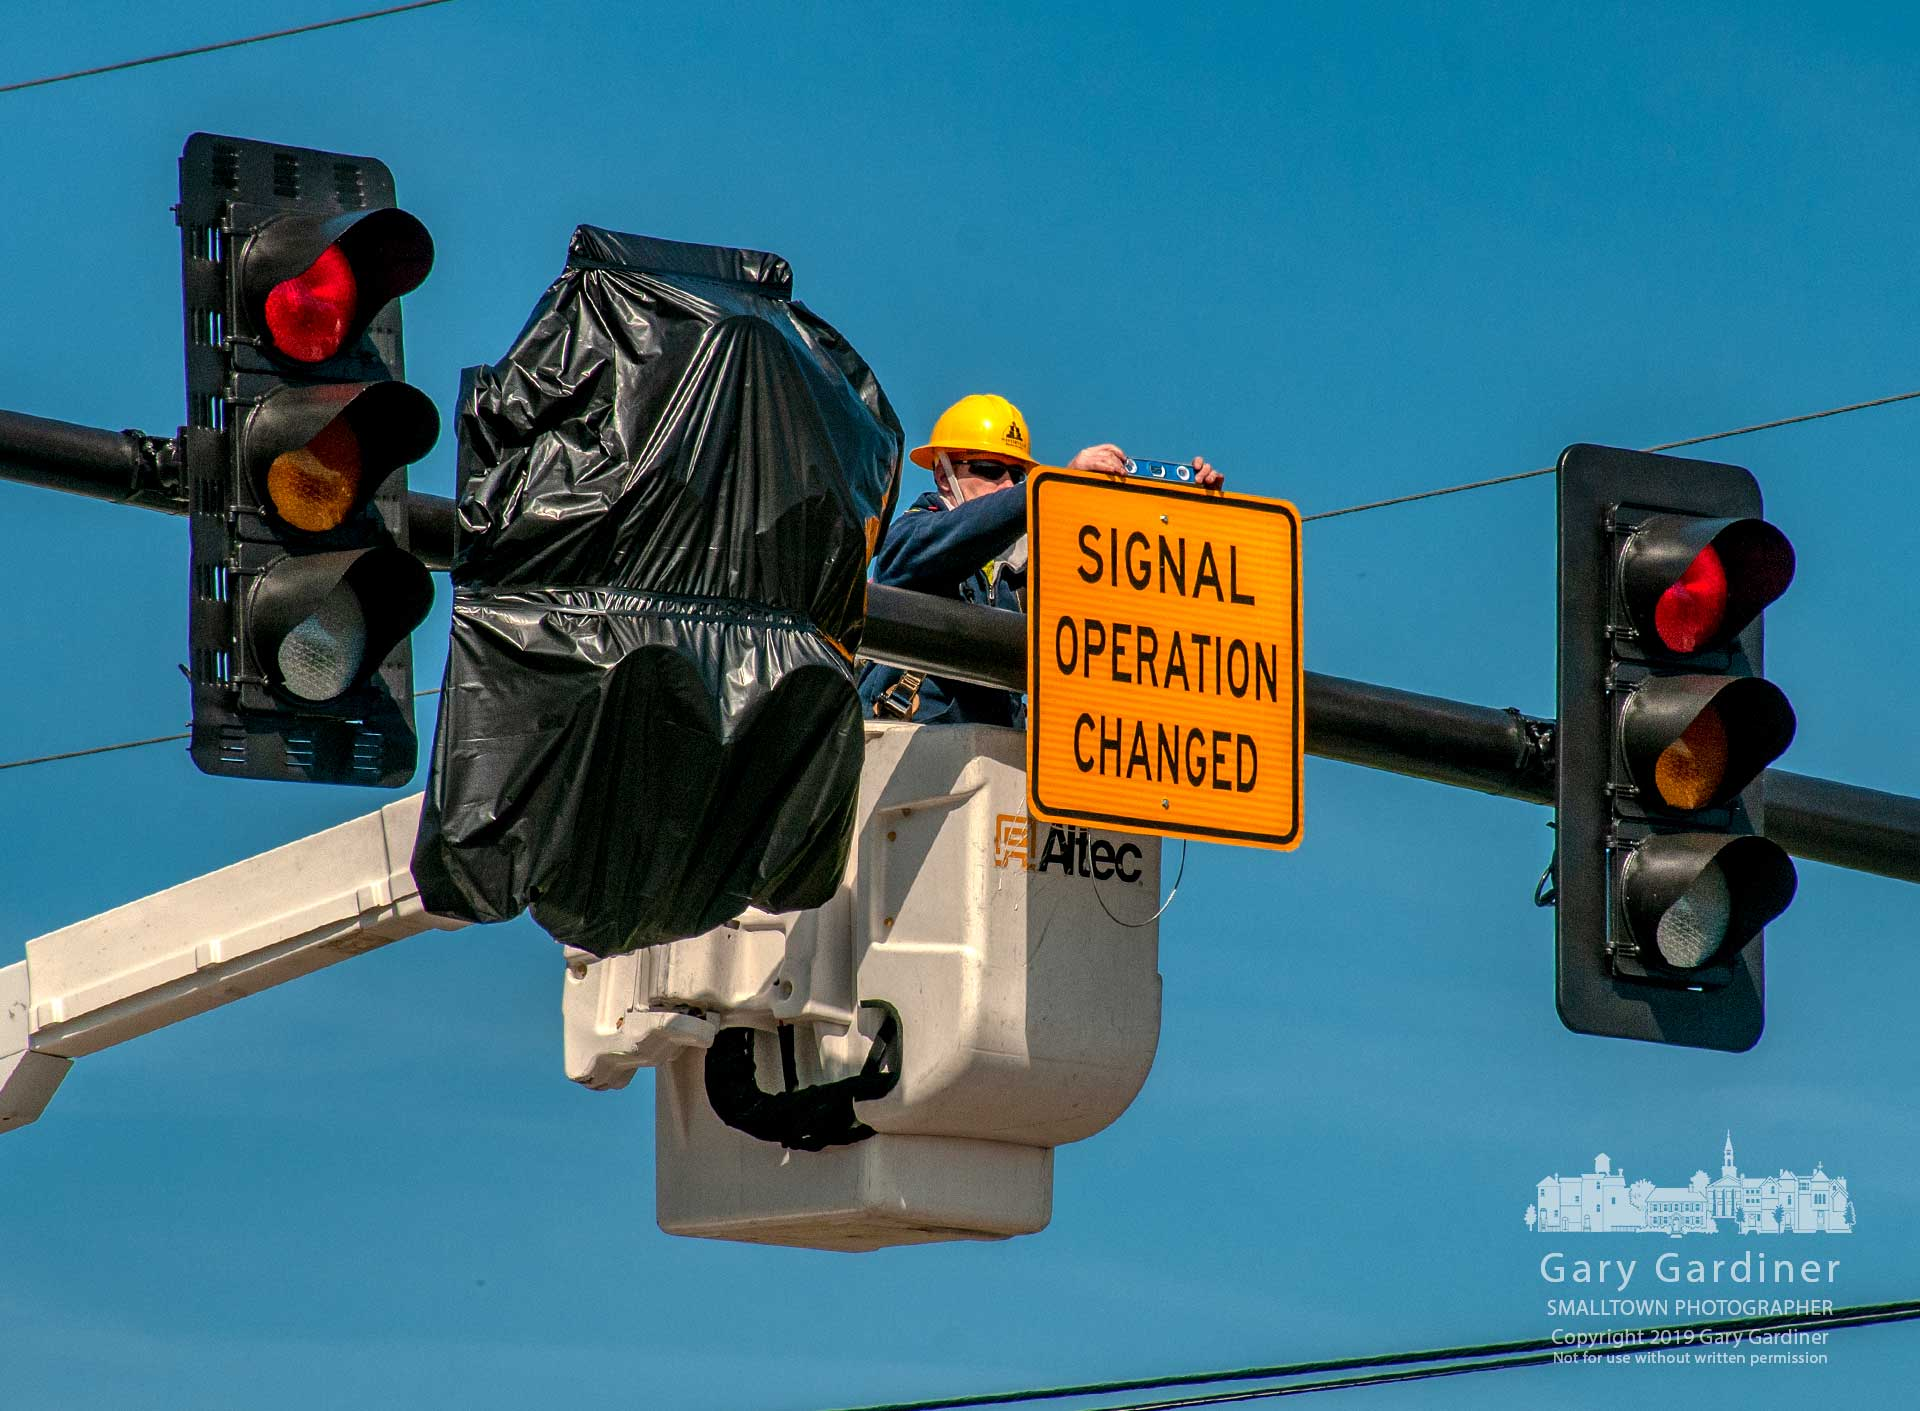 A city electrician levels a sign noting the change of signals set for later this week at County Line road and Africa Road adding left turn signals. My Final Photo for April 1, 2019.